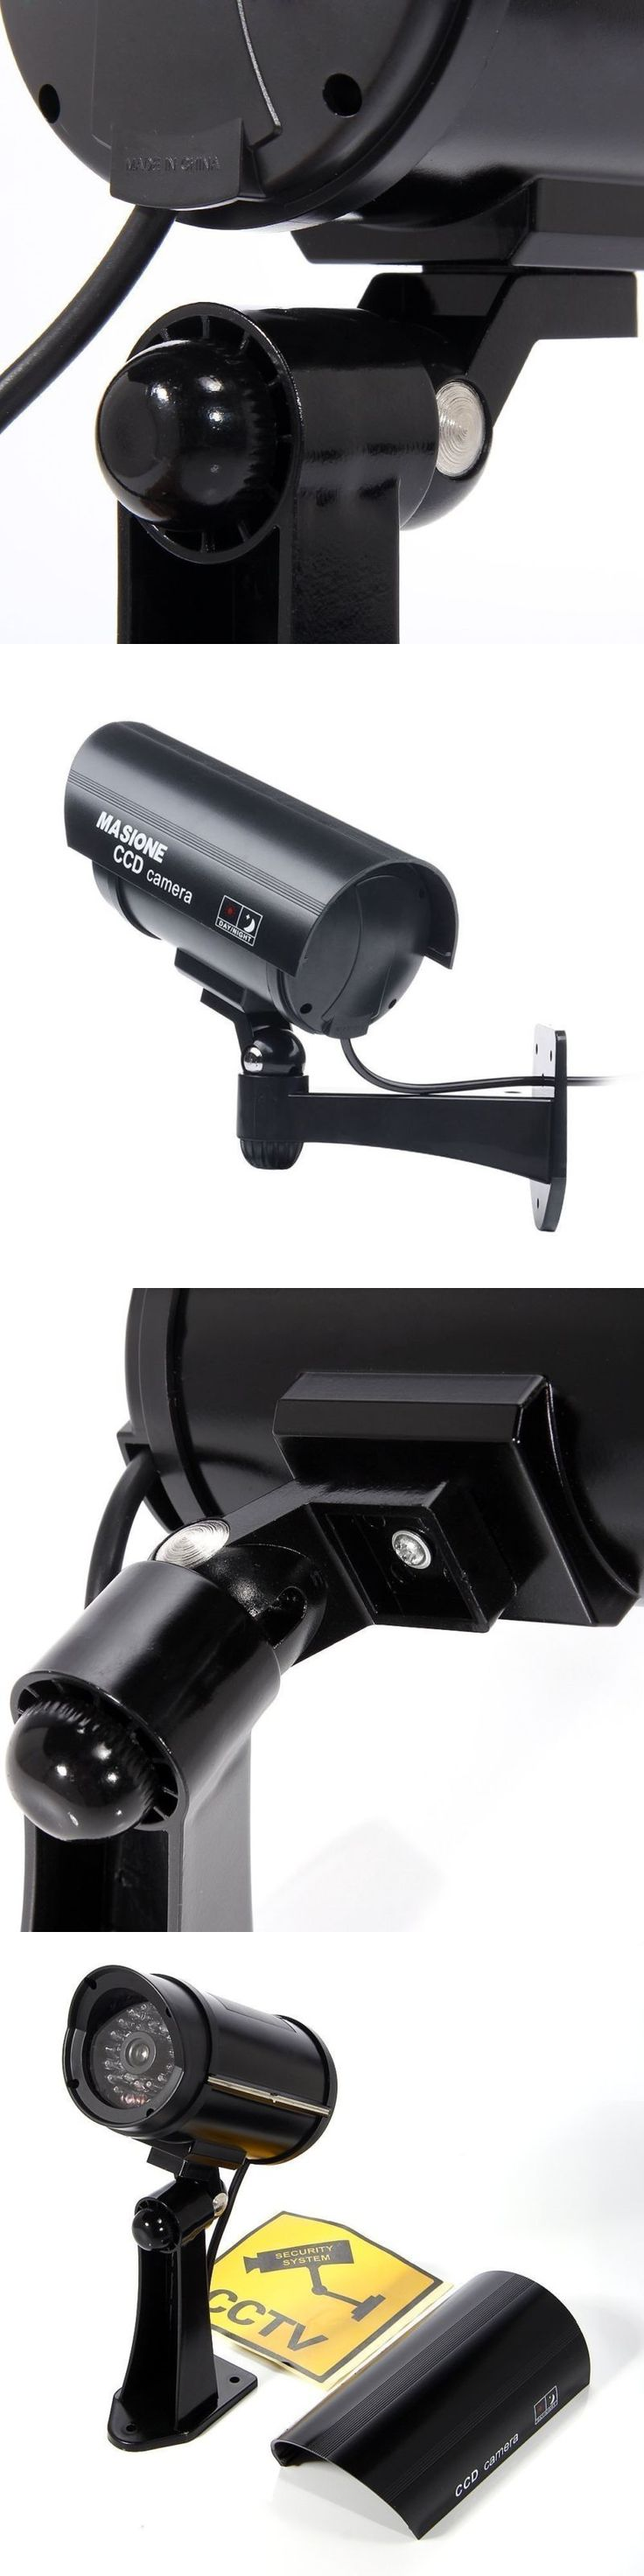 Dummy Cameras: Prosshop Bullet Dummy Fake Surveillance Security Dome Camera Simulation Monitor -> BUY IT NOW ONLY: $38.25 on eBay!